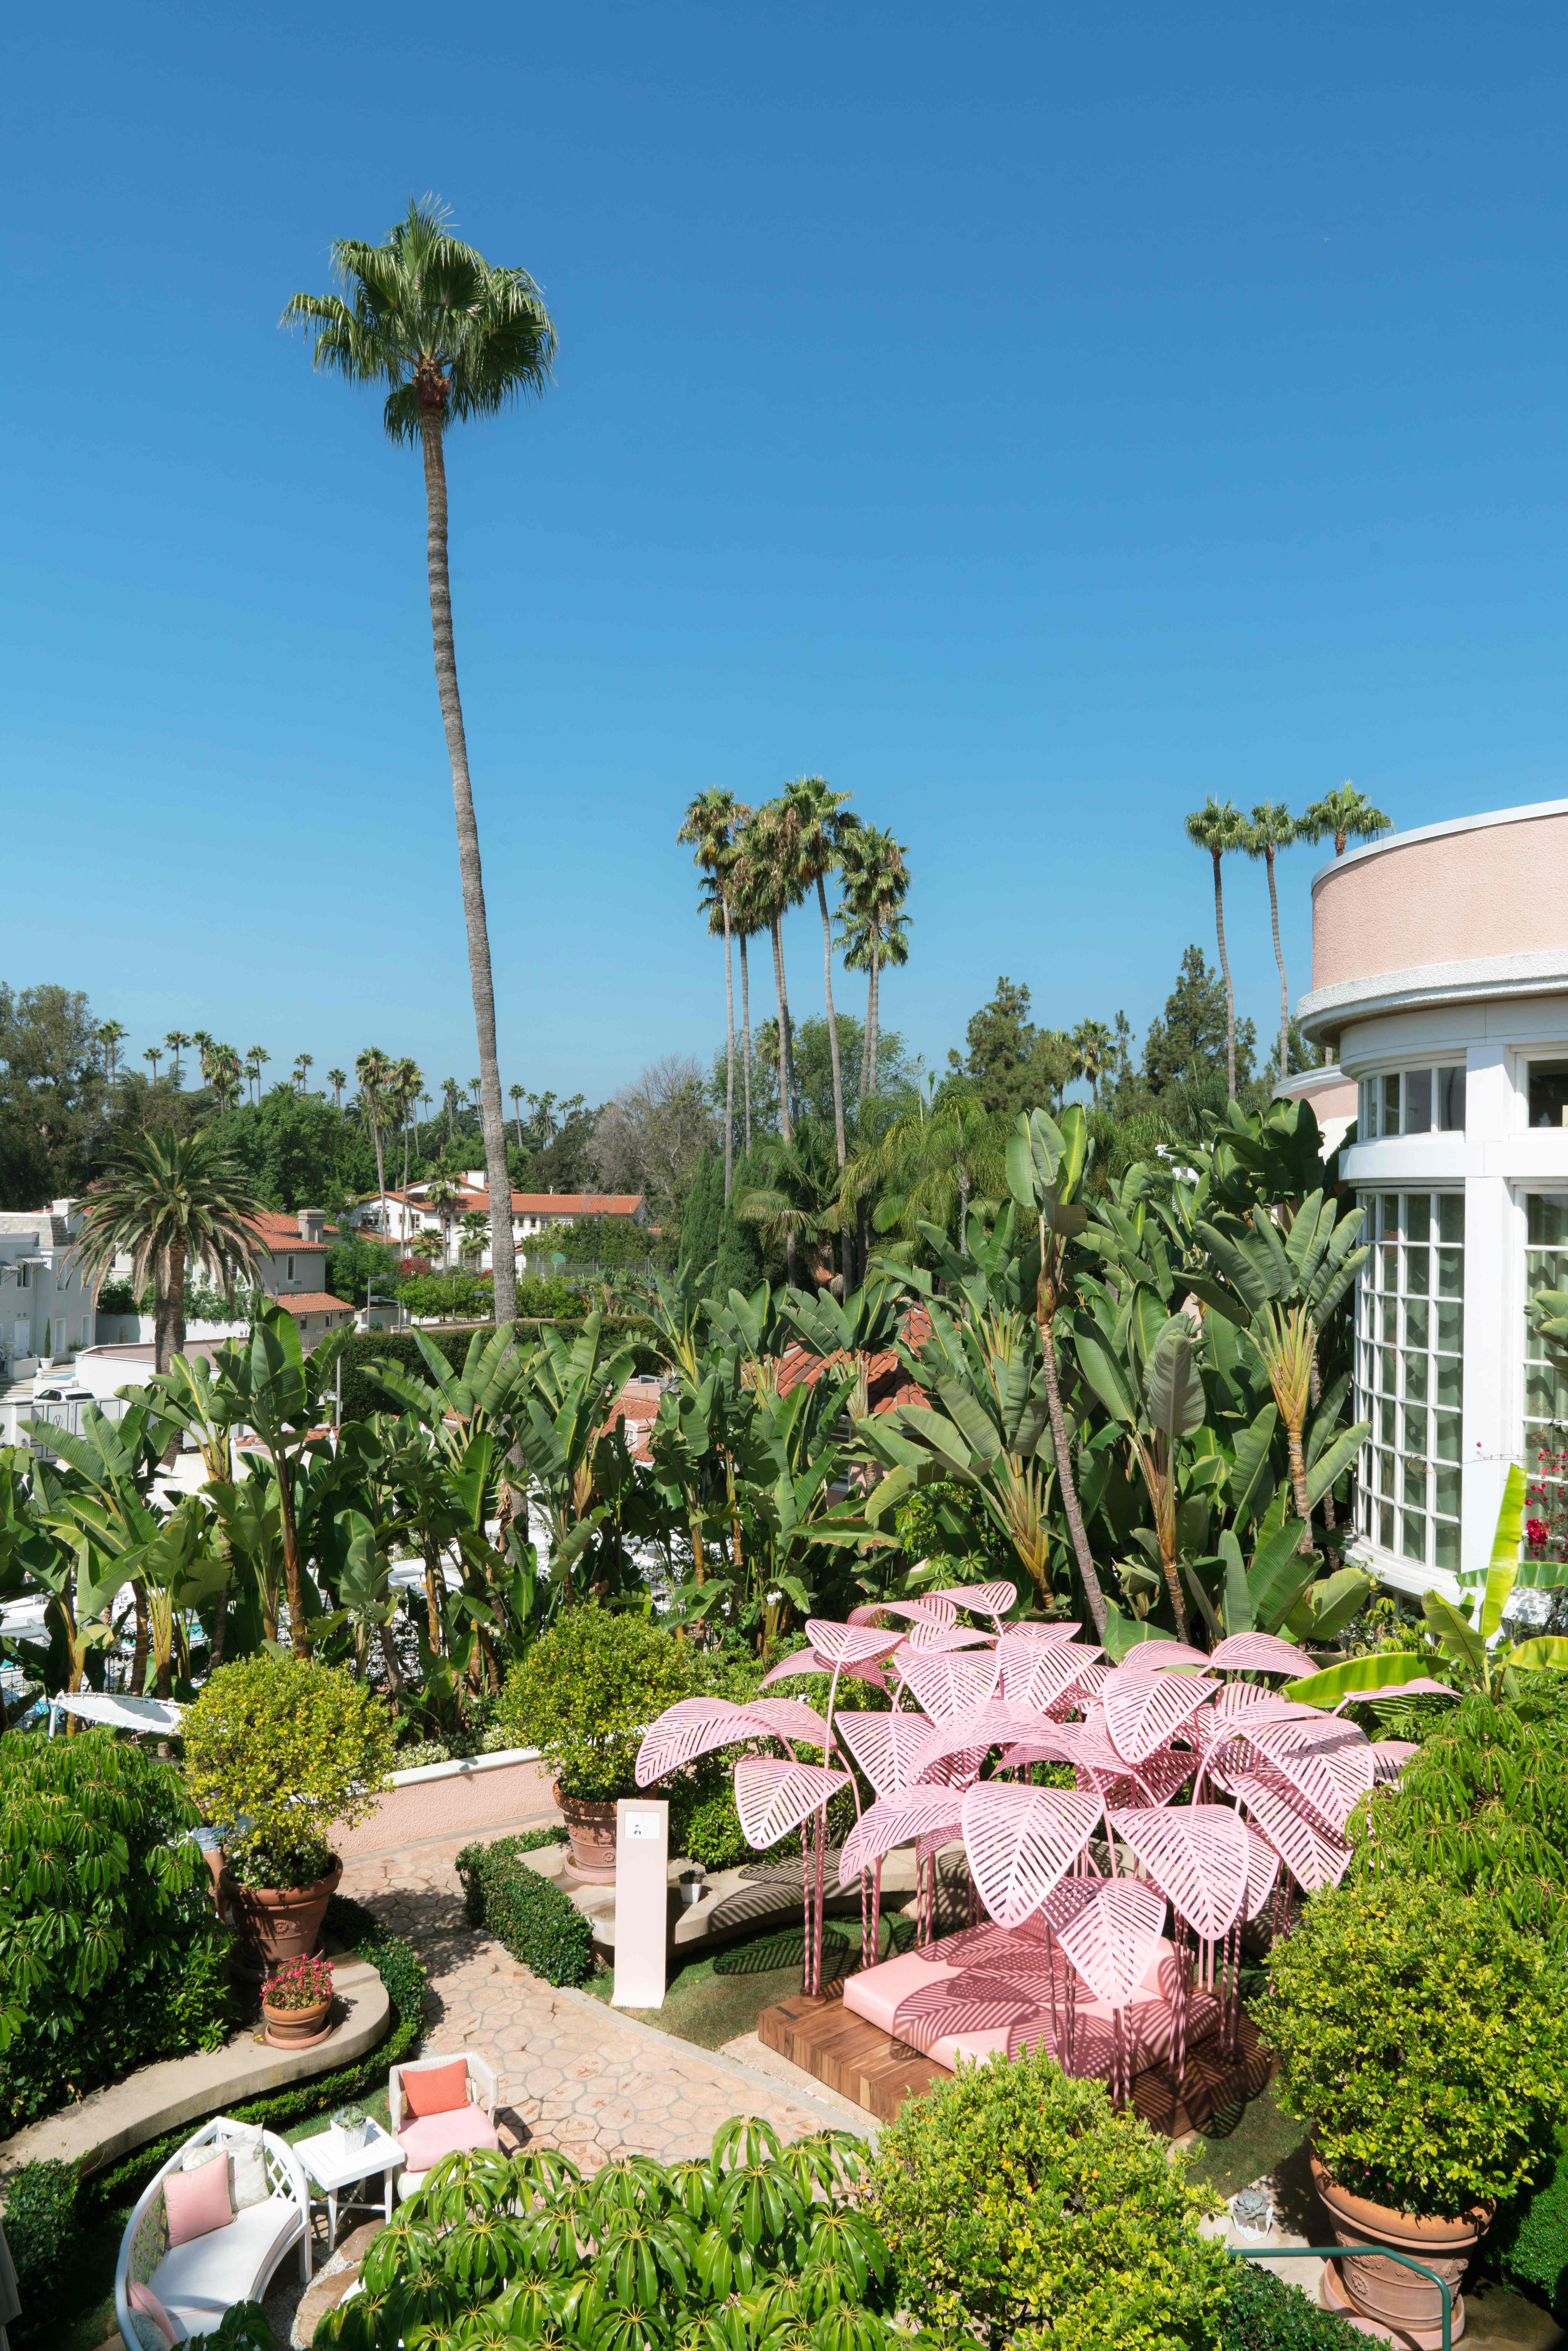 The beverly hills photo